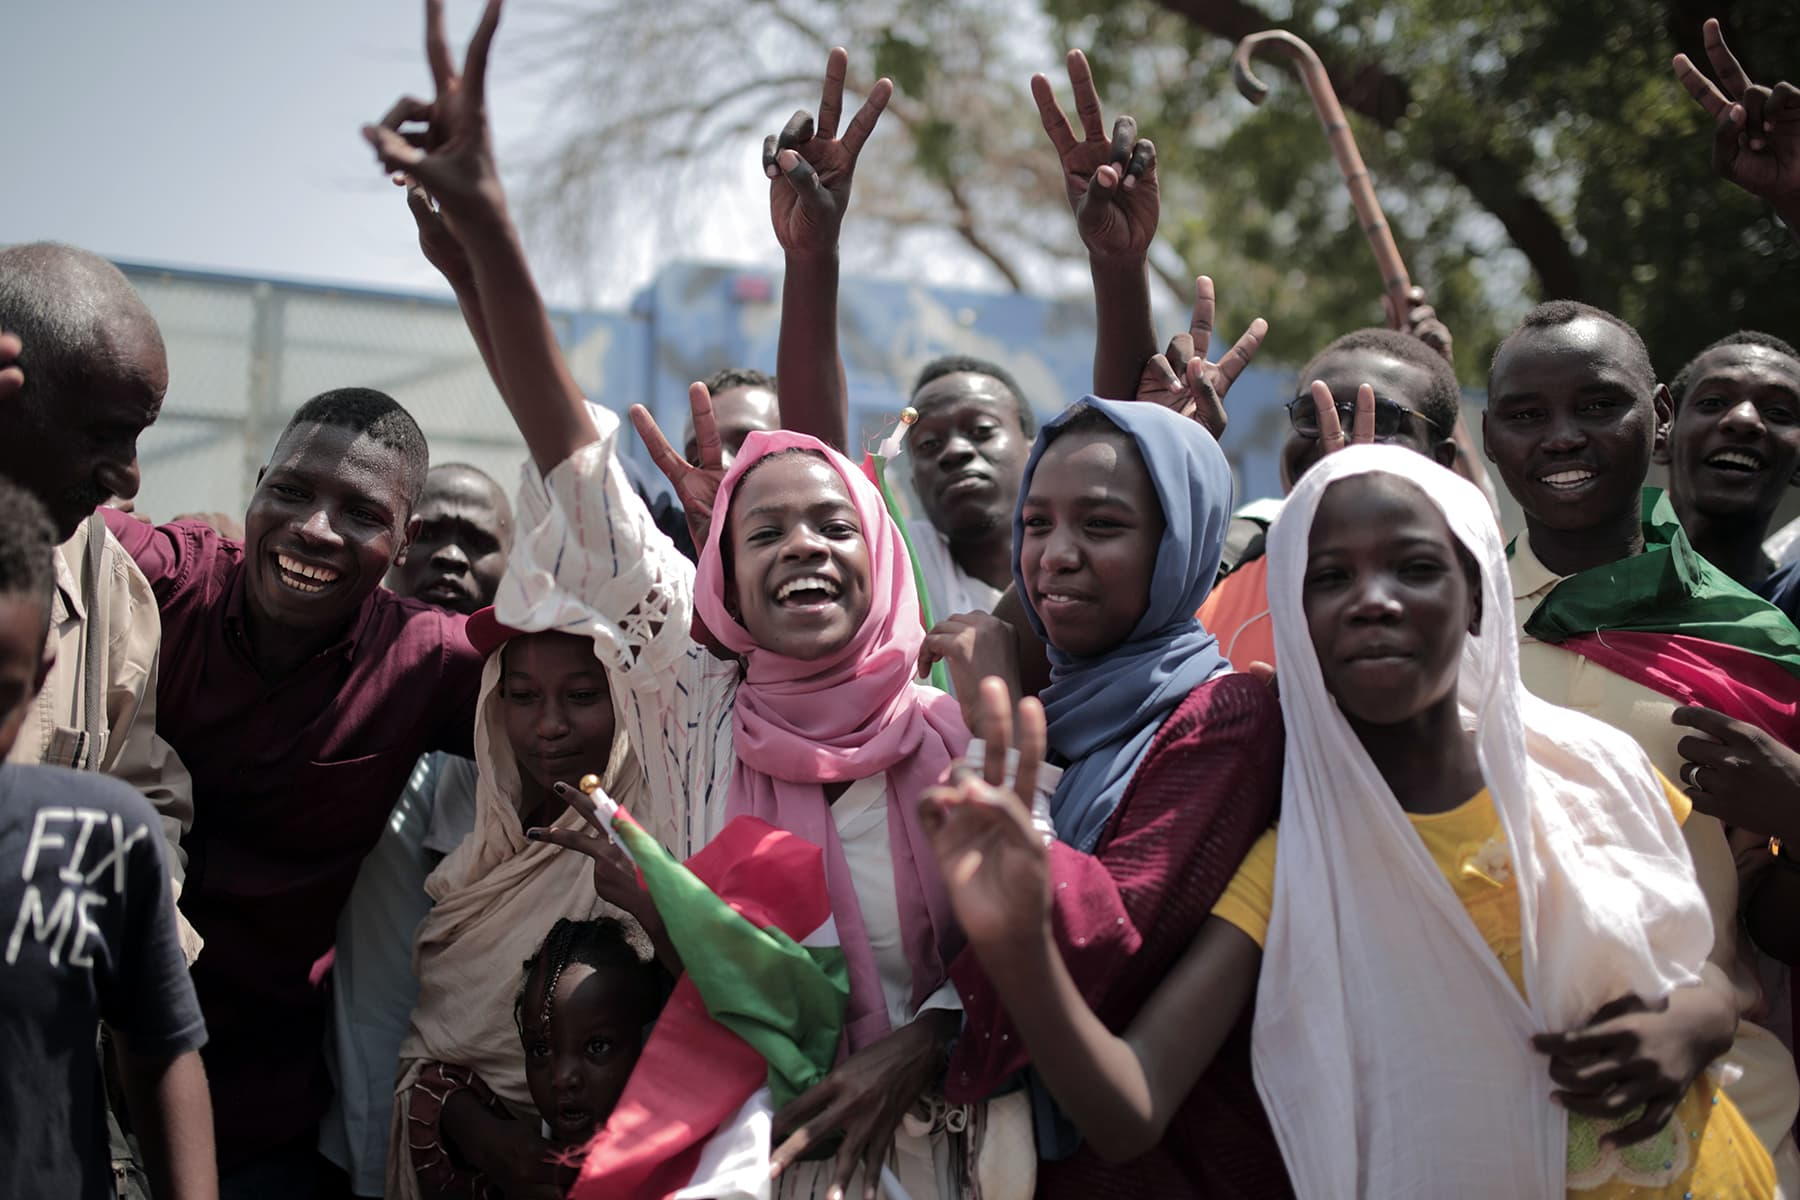 Sudanese men and women celebrate outside the Friendship Hall in the capital Khartoum where generals and protest leaders signed a historic transitional constitution meant to pave the way for civilian rule in Sudan, on Saturday. — AFP